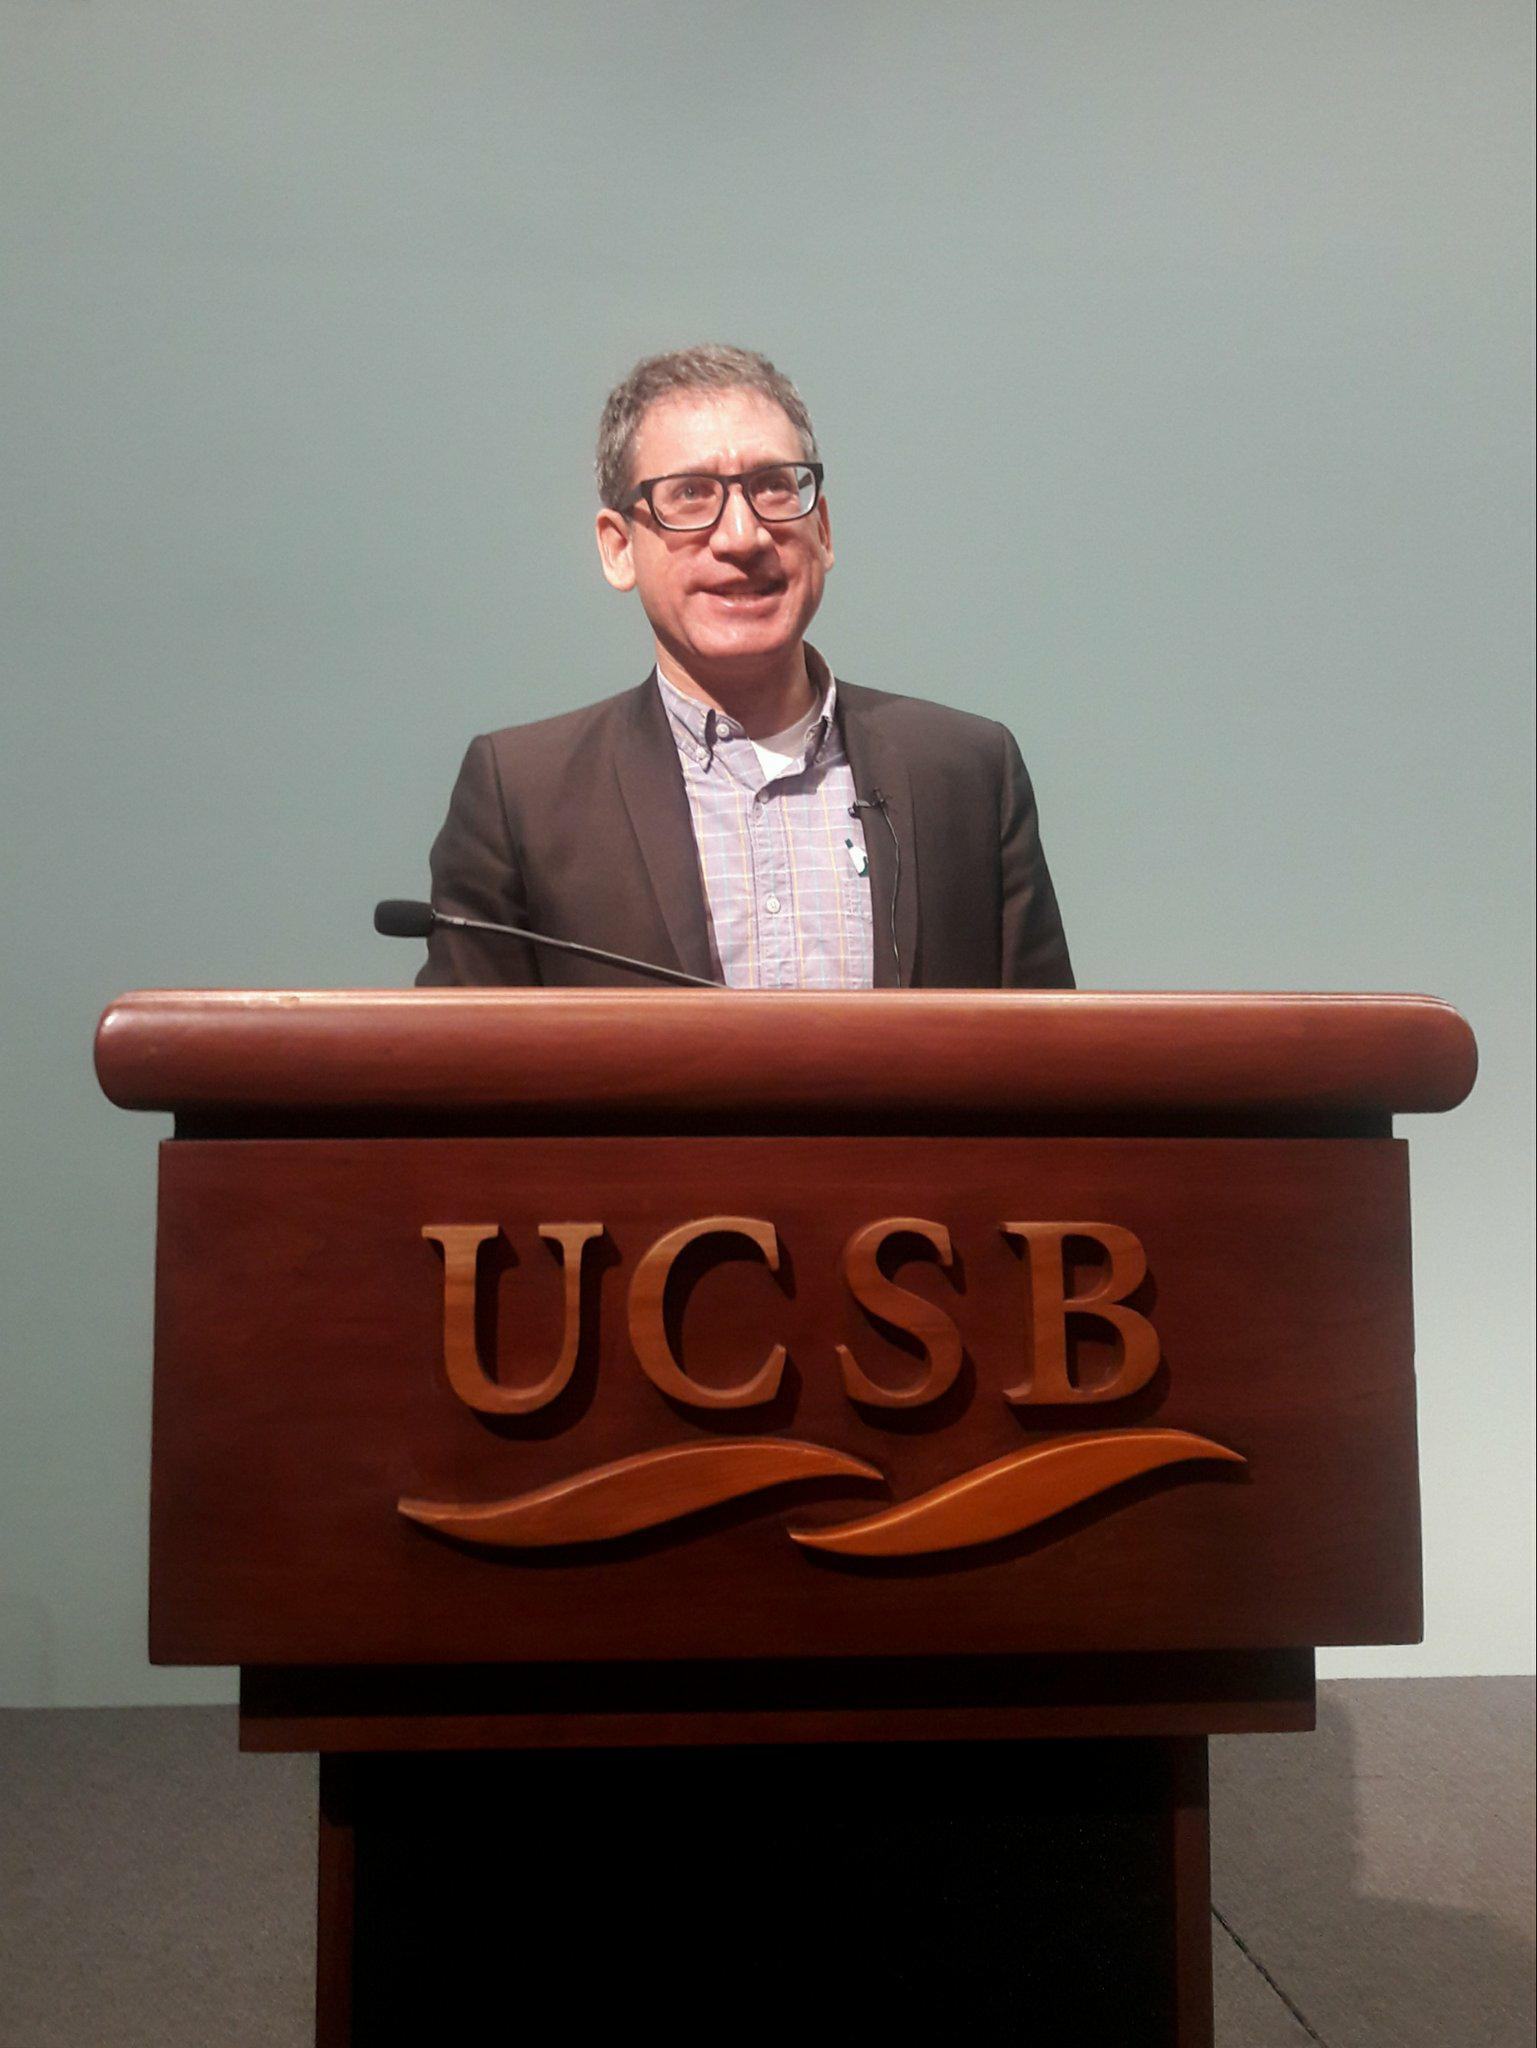 Tony Michaels, PhD., a religious studies professor from University of Wisconsin-Madison, delivers his talk about Jewish American History at UC Santa Barbara.